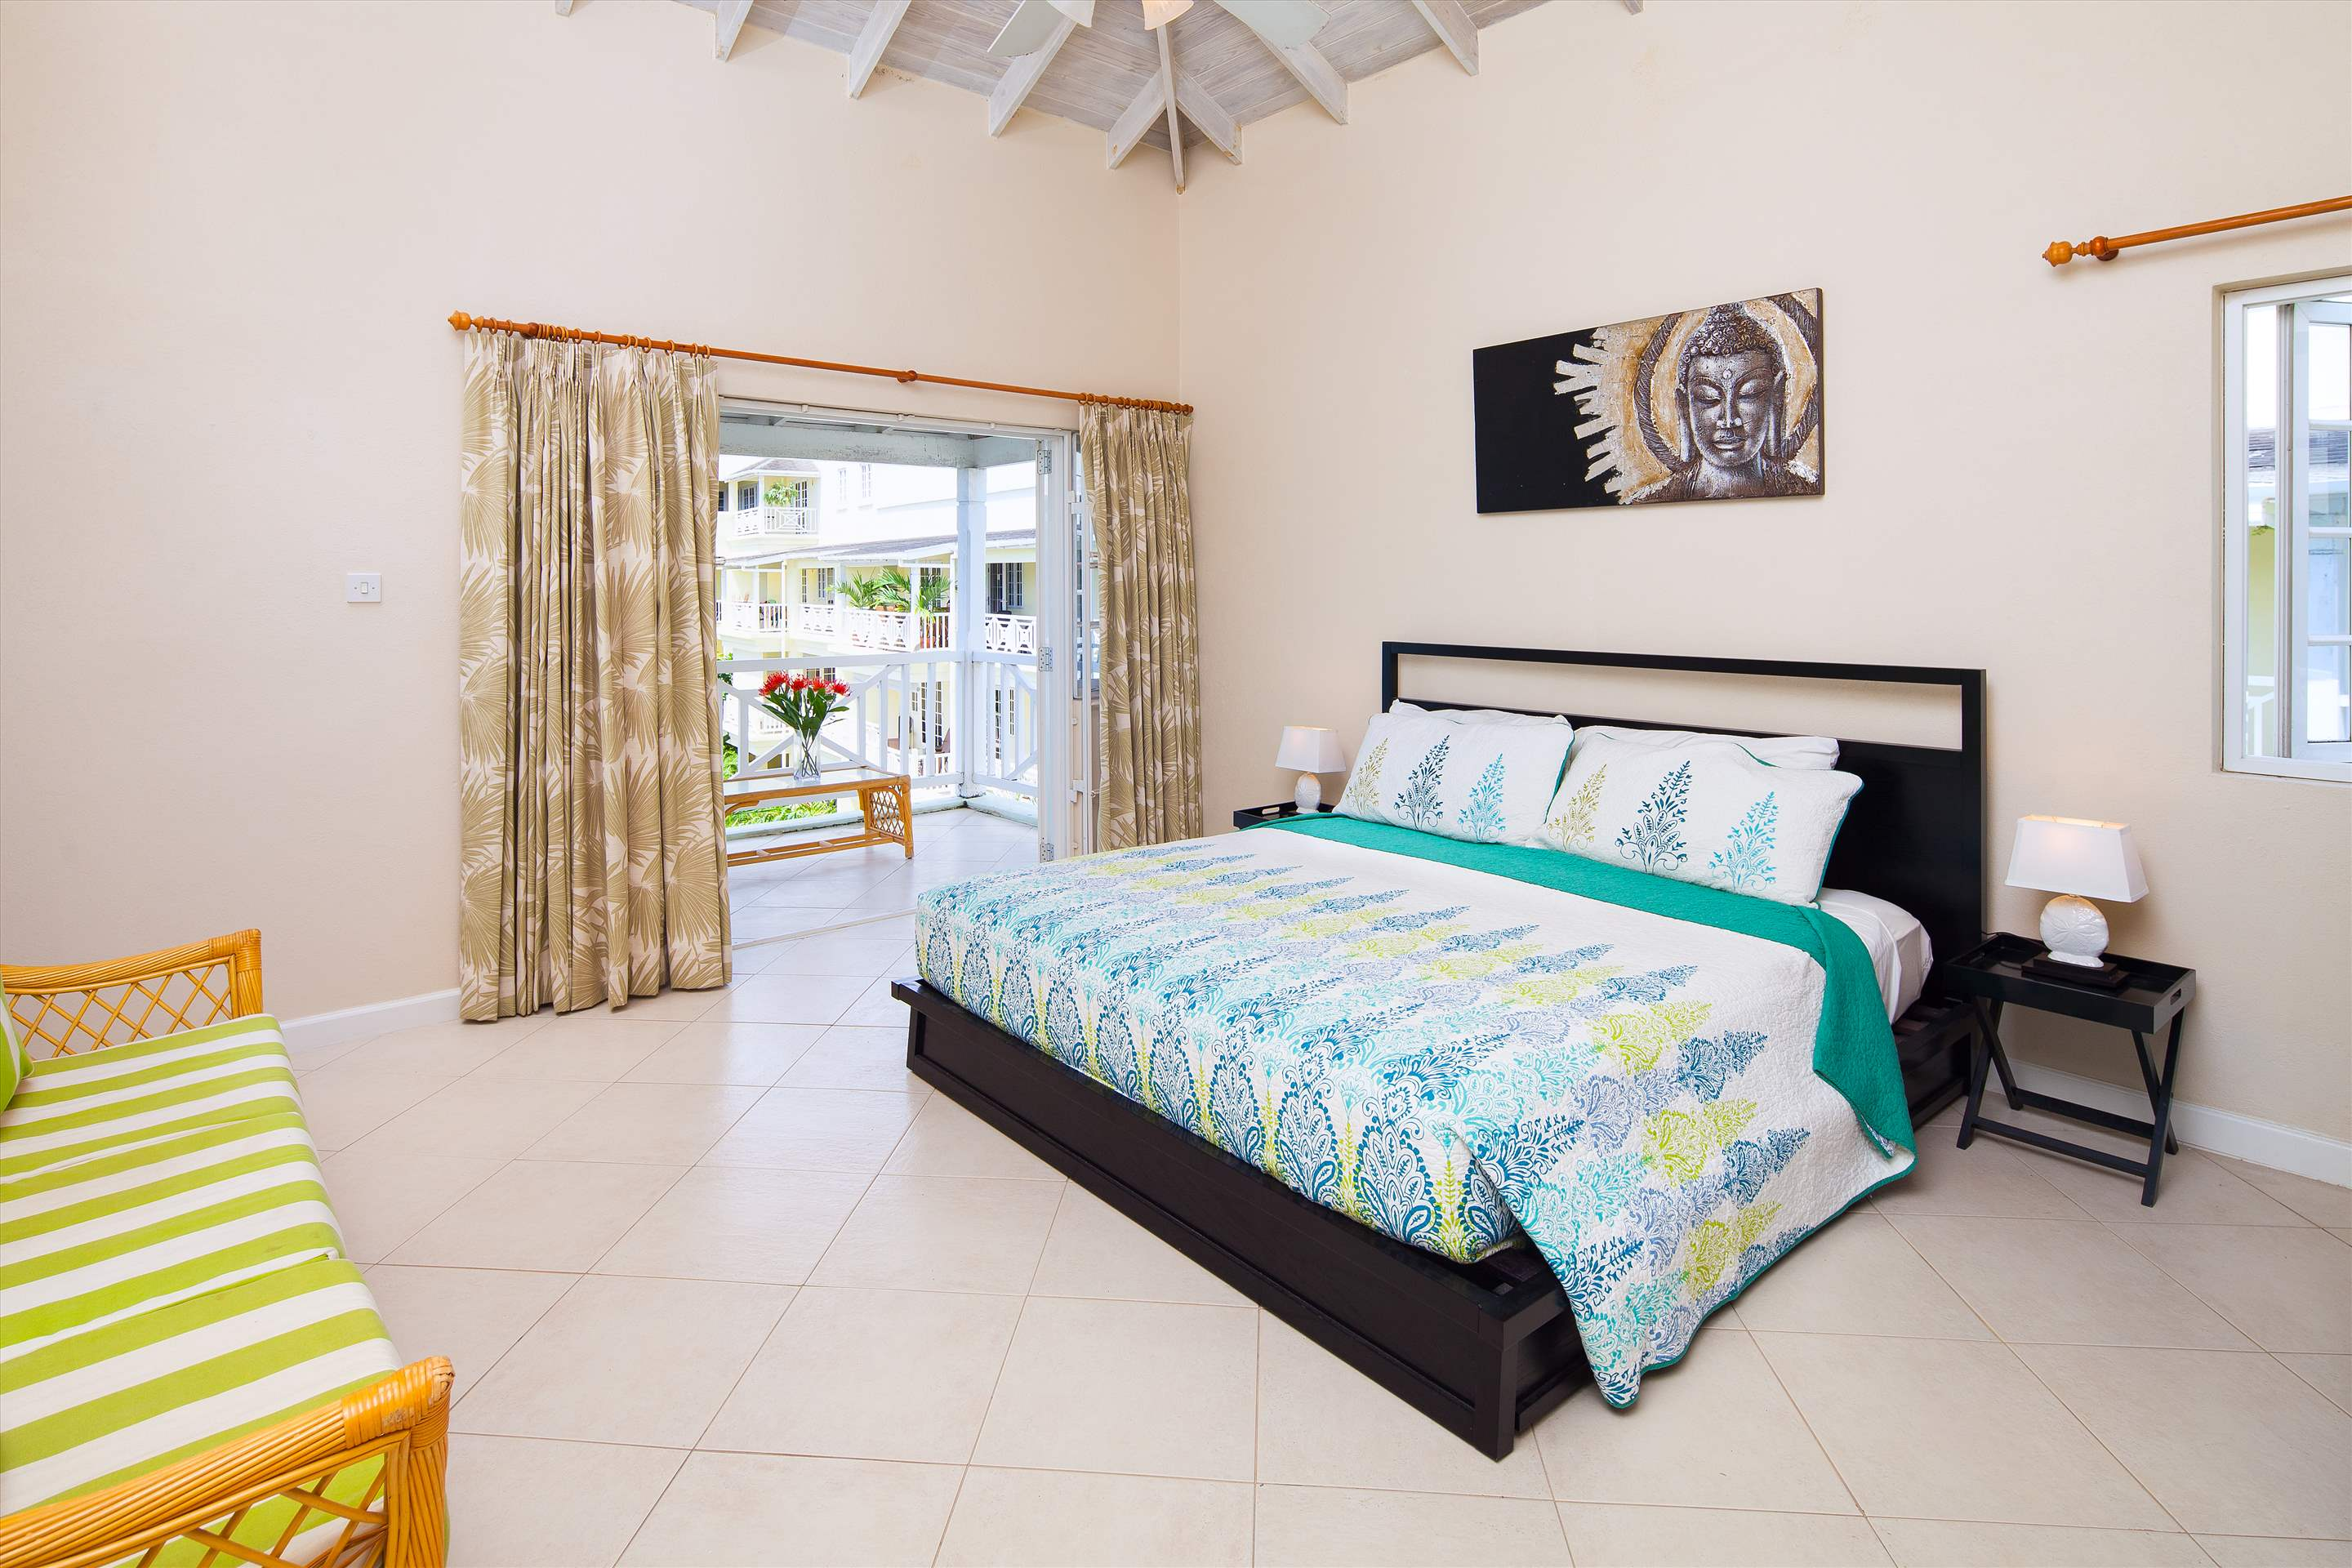 Margate Gardens 4, 3 bedroom, 3 bedroom apartment in St. Lawrence Gap & South Coast, Barbados Photo #8